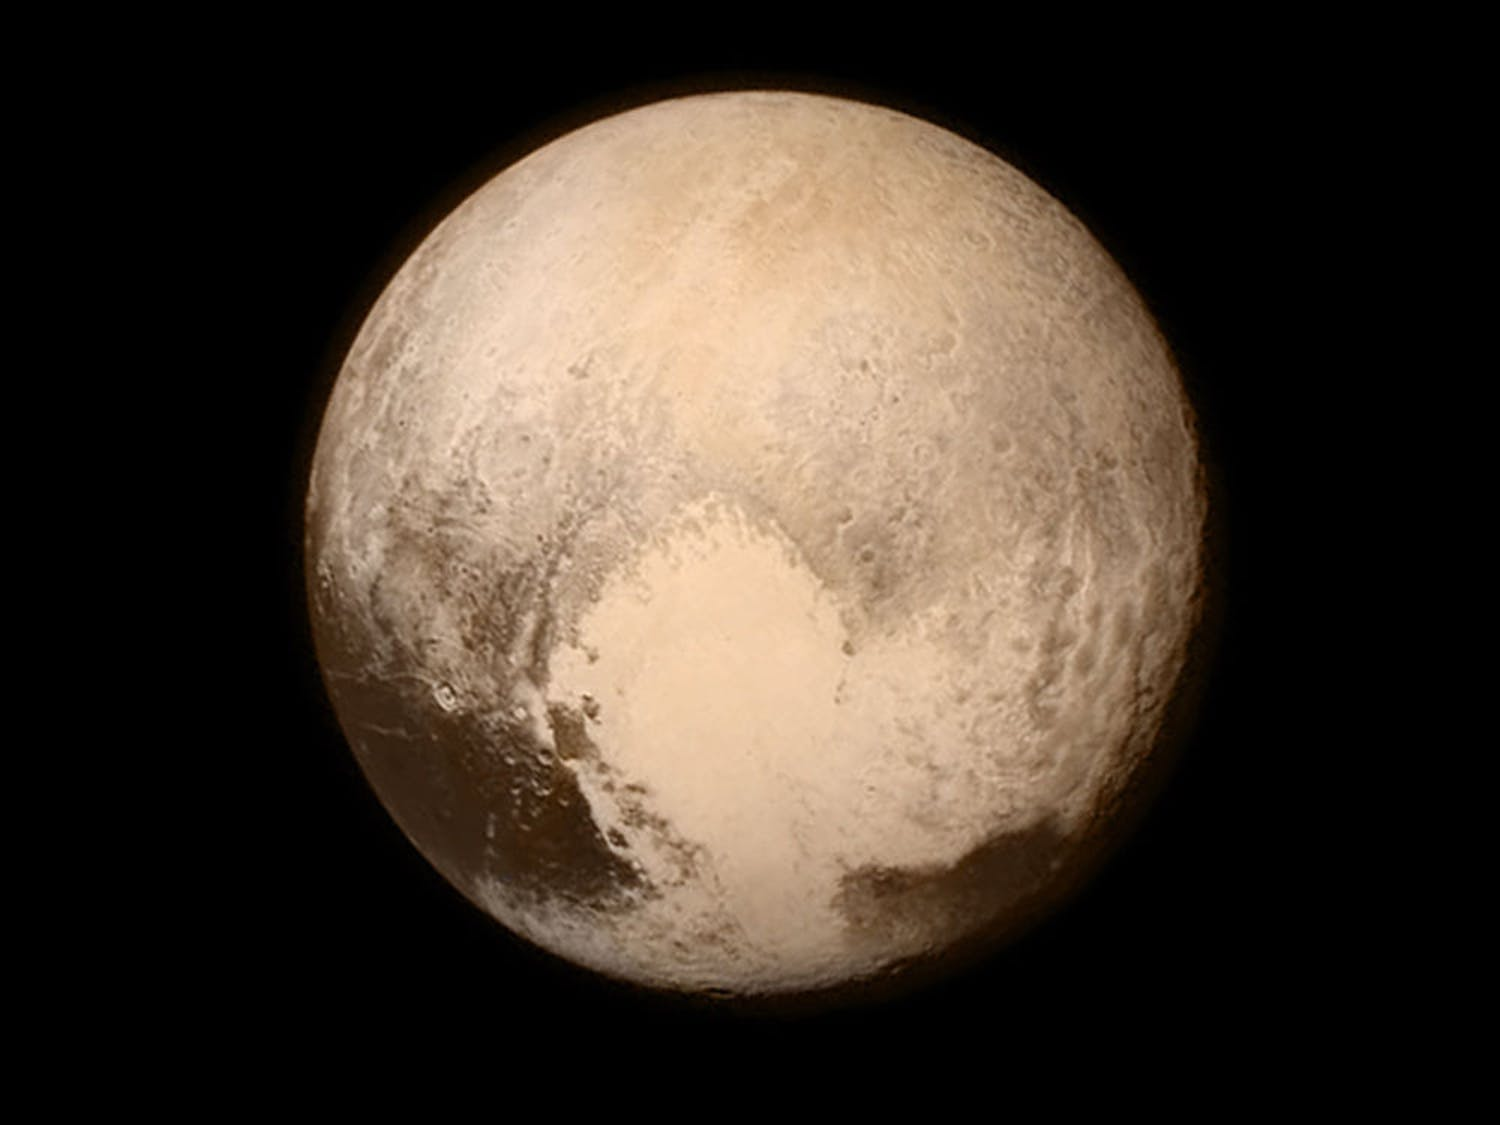 This July 13 image provided by NASA shows Pluto as seen from the New Horizons spacecraft. The United States is now the only nation to visit every single planet in the solar system. Pluto was No. 9 in the lineup when New Horizons departed Cape Canaveral, Florida, on Jan. 19, 2006.